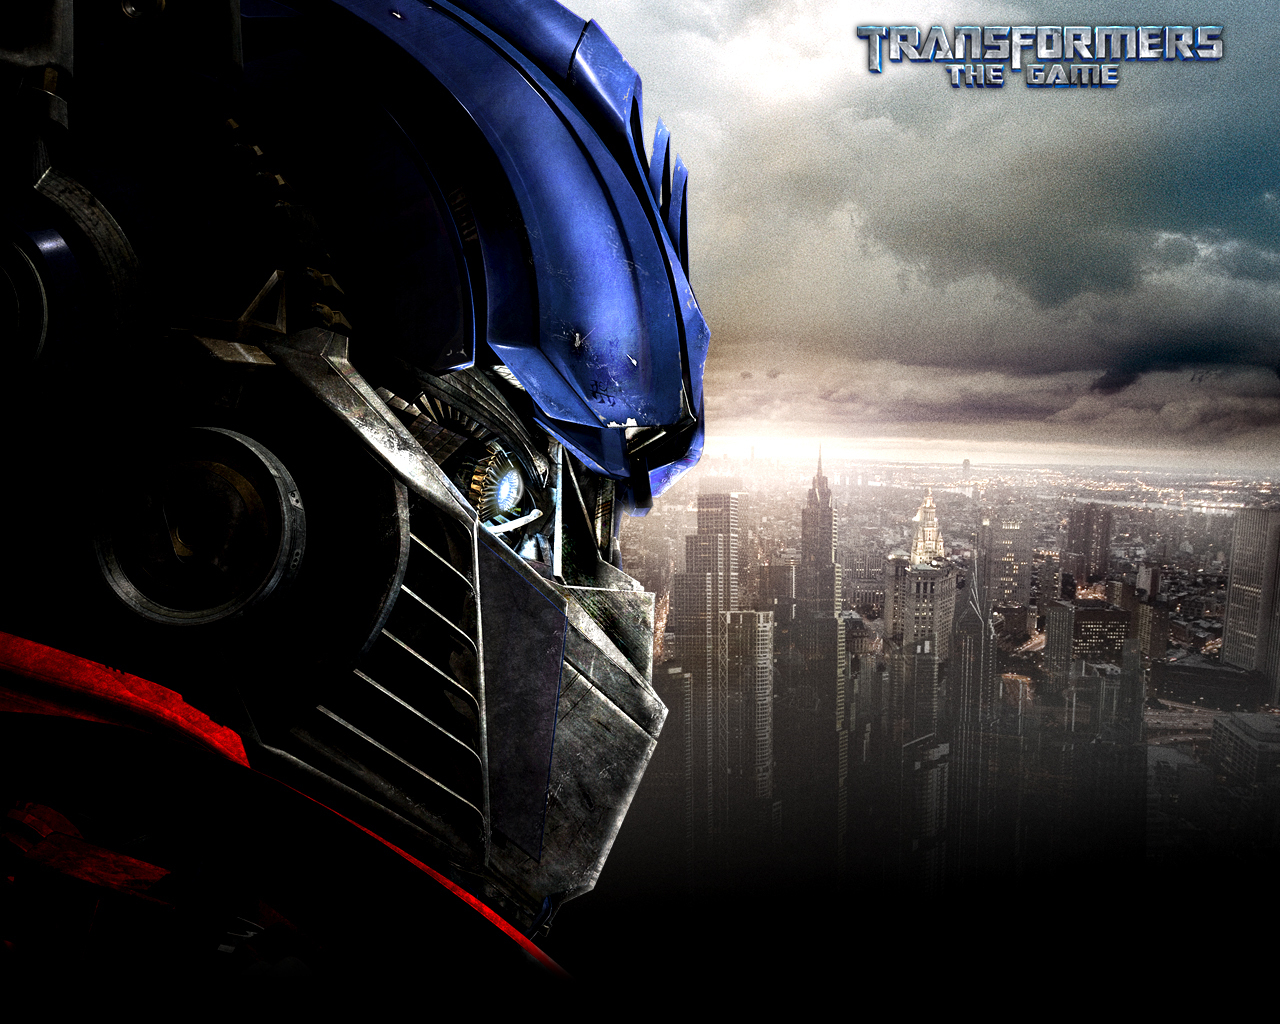 Transformers images Transformers HD wallpaper and background photos 1280x1024